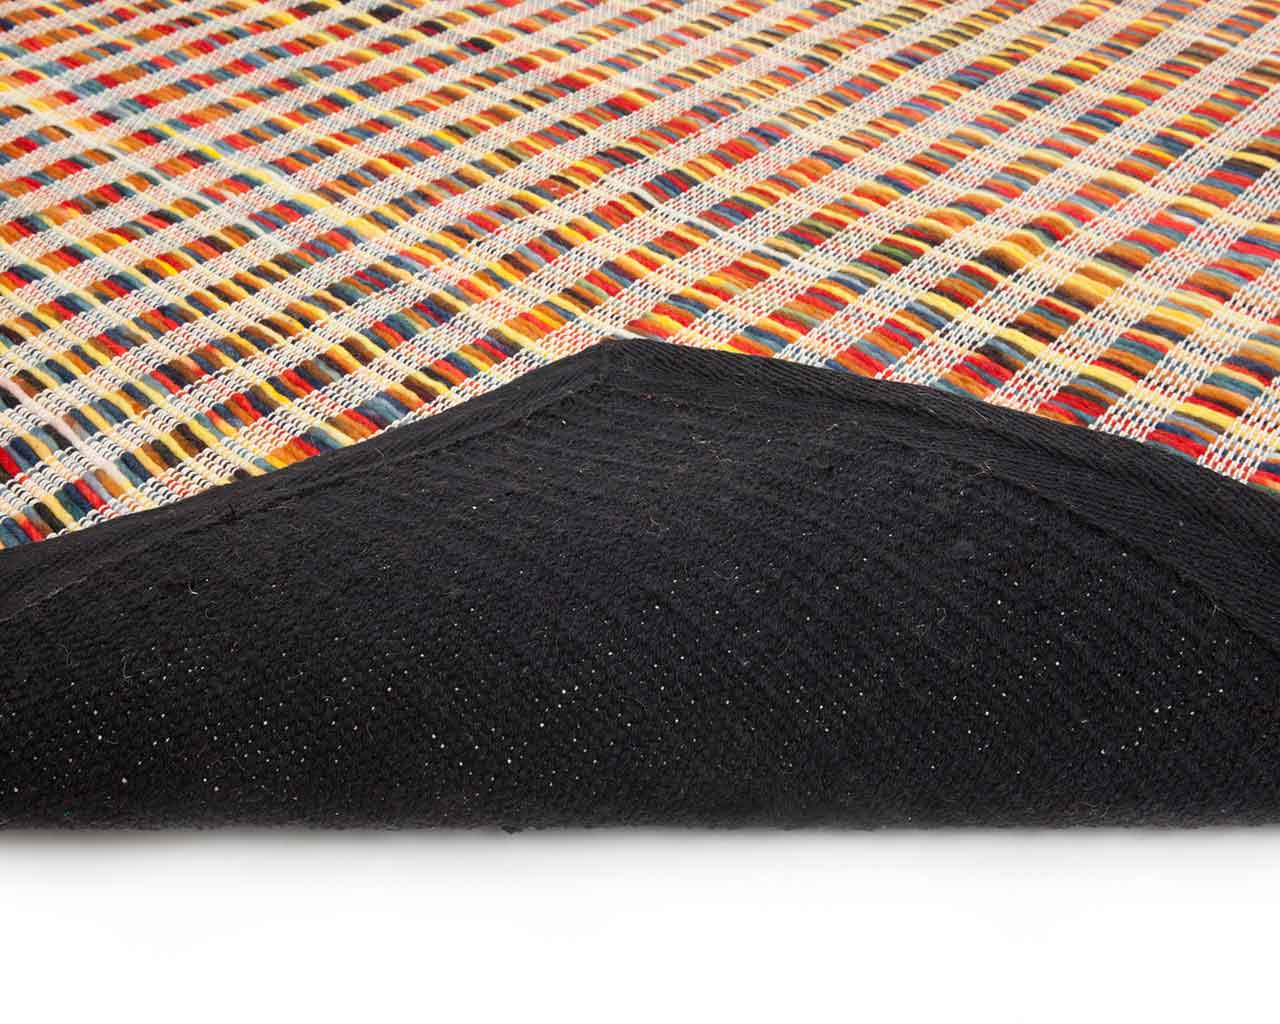 carpet home folded rugs made by hand india decor wool brand sukhi 1